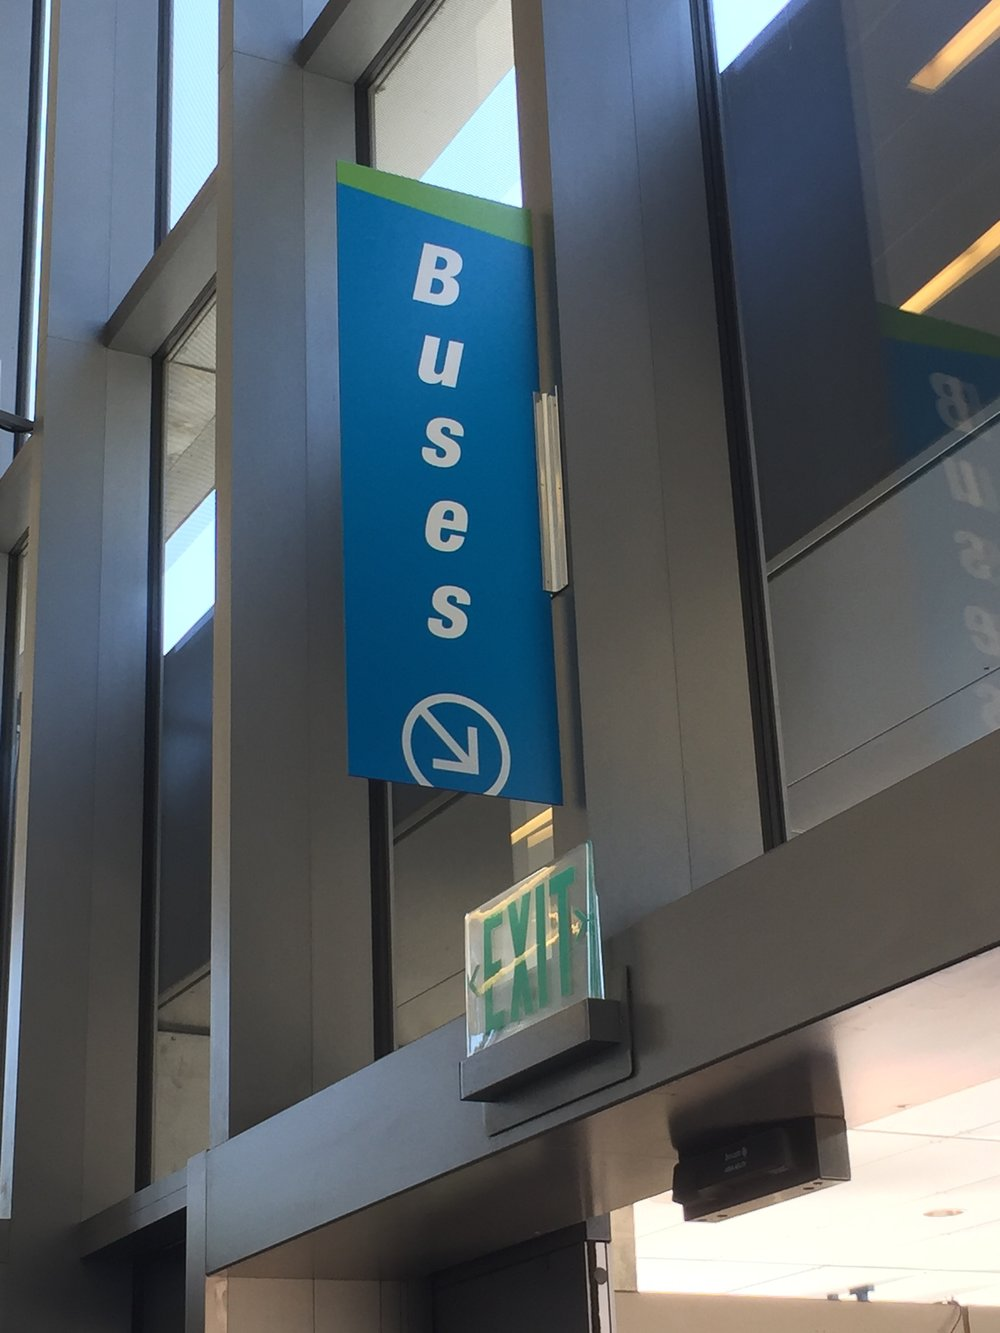 Bus Directional Blade Sign